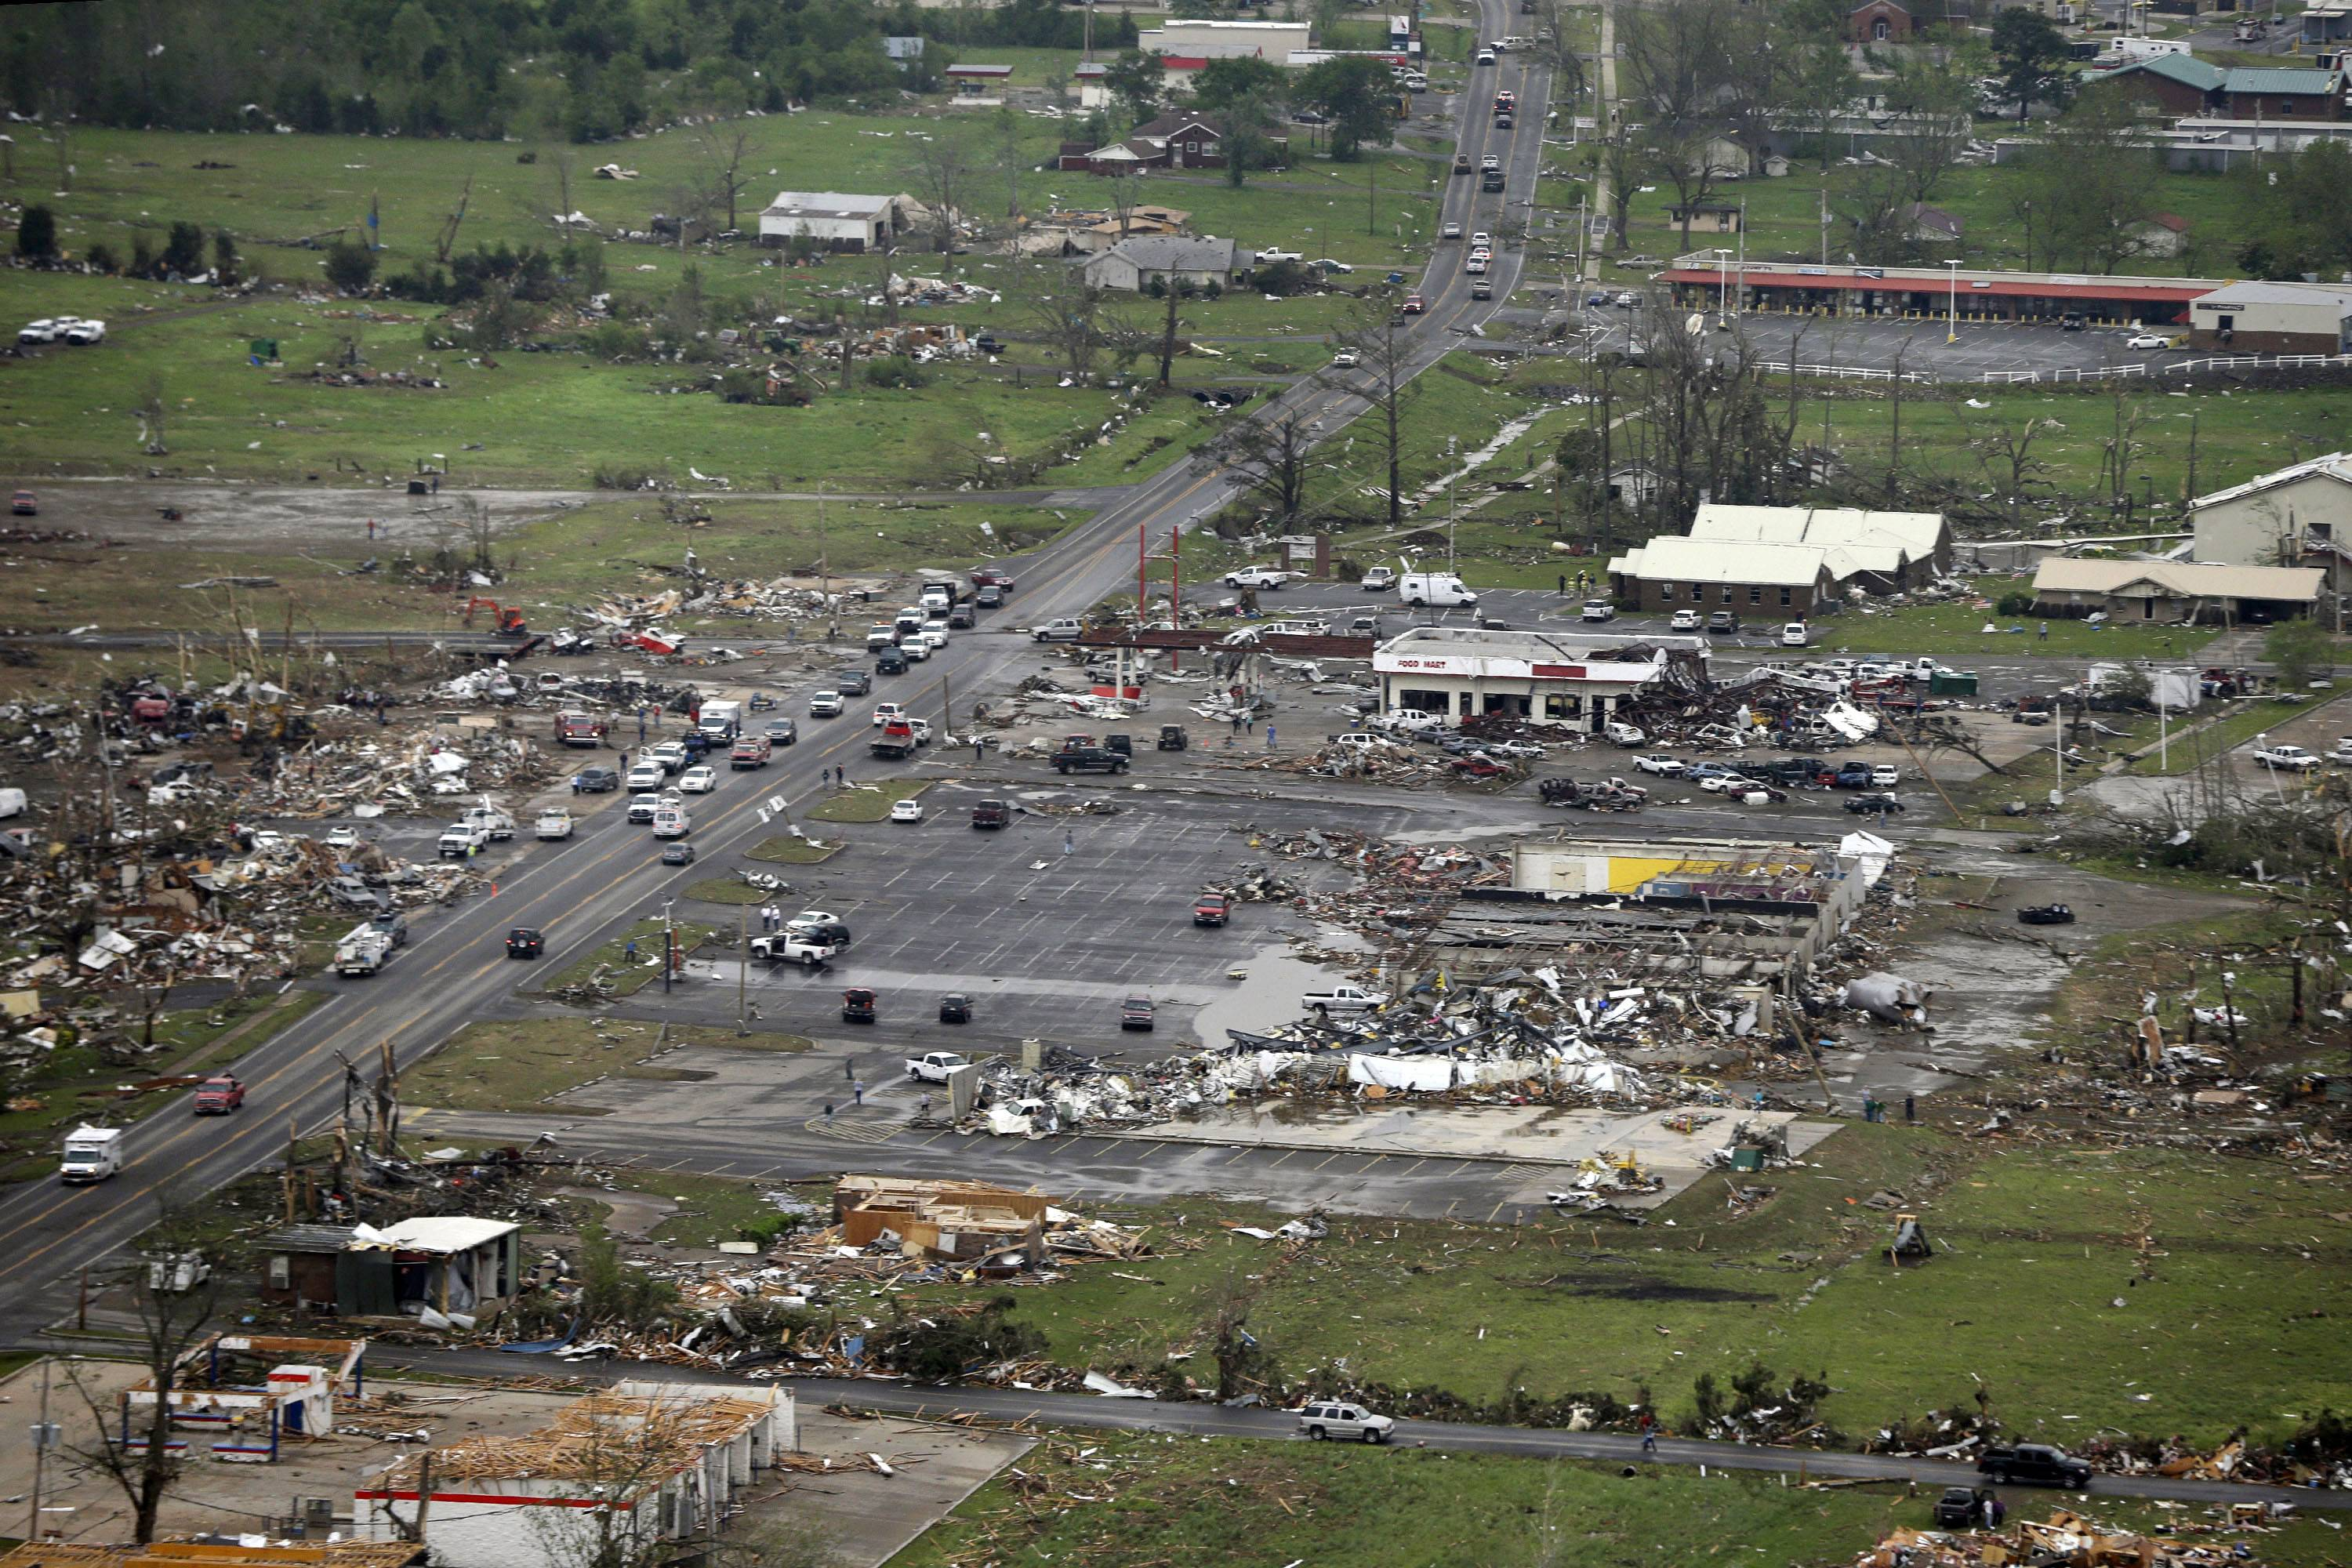 A tornado hit Vilonia, Ark., earlier this week, the second time it was hit in three years. Four people were killed in a 2011 storm. Until this late April 2014 outbreak, the U.S. as a whole had by far the quietest start of the year for tornadoes. Longer trends show more tornado clusters recently.